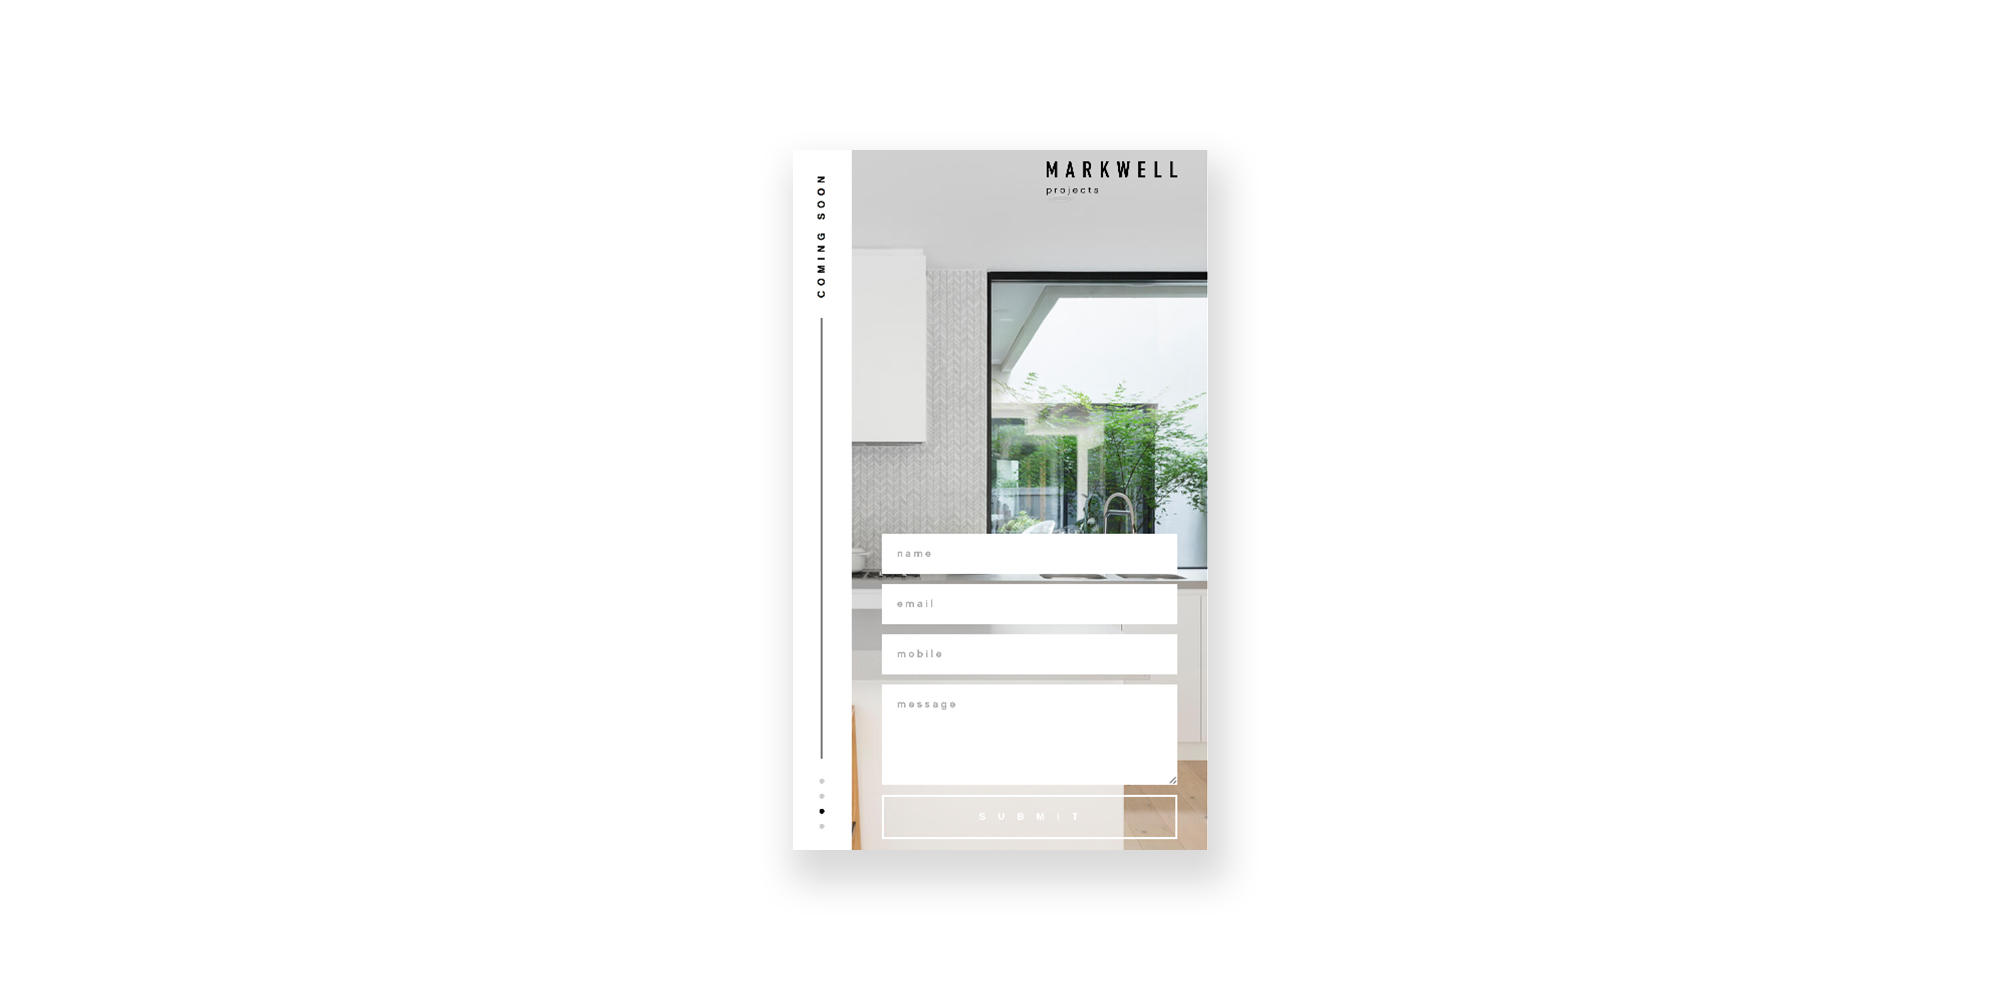 Markwell Projects Website